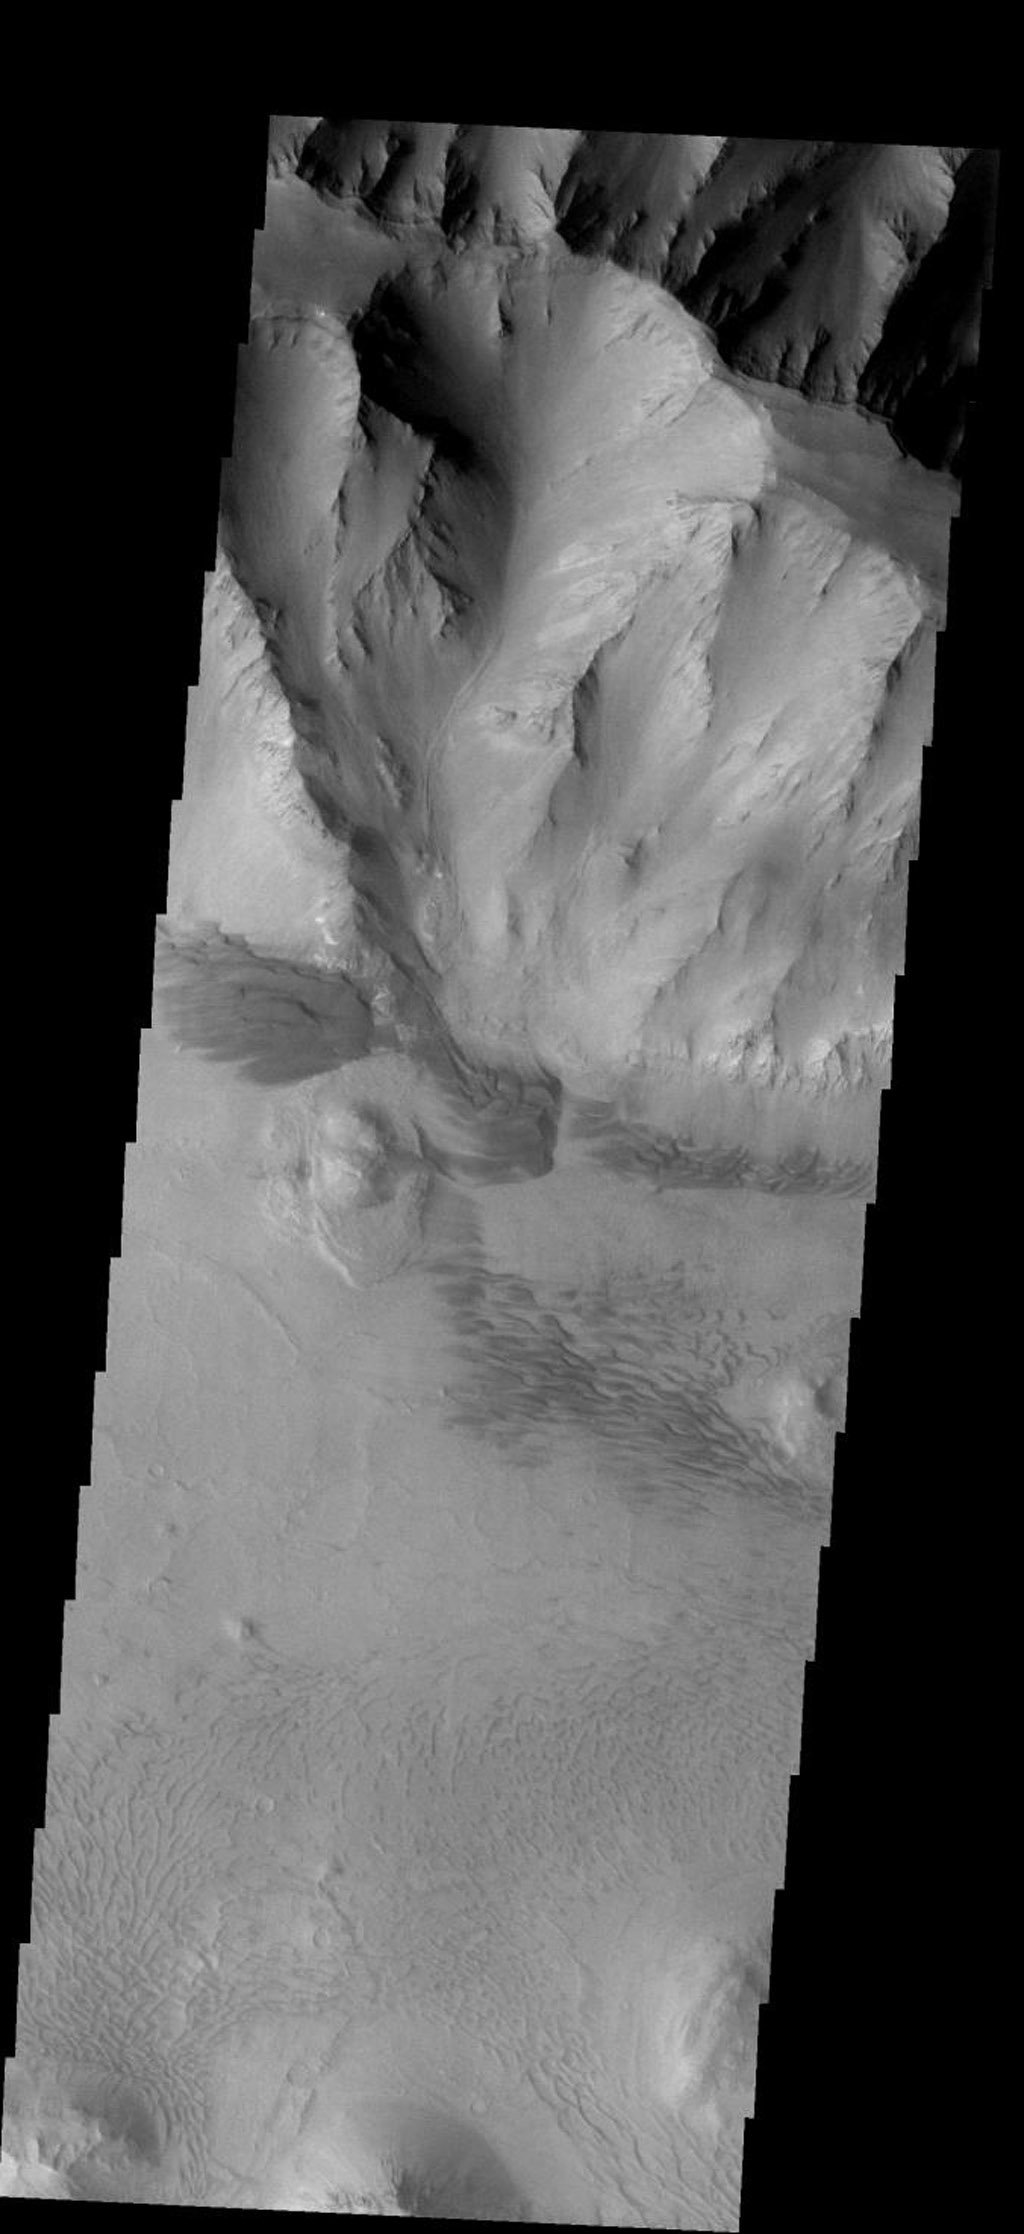 This image of the east end of Coprates Chasma on Mars contains several dune fields. The dunes in the center of the image are larger and darker than the dunes at the bottom as seen by NASA's 2001 Mars Odyssey.